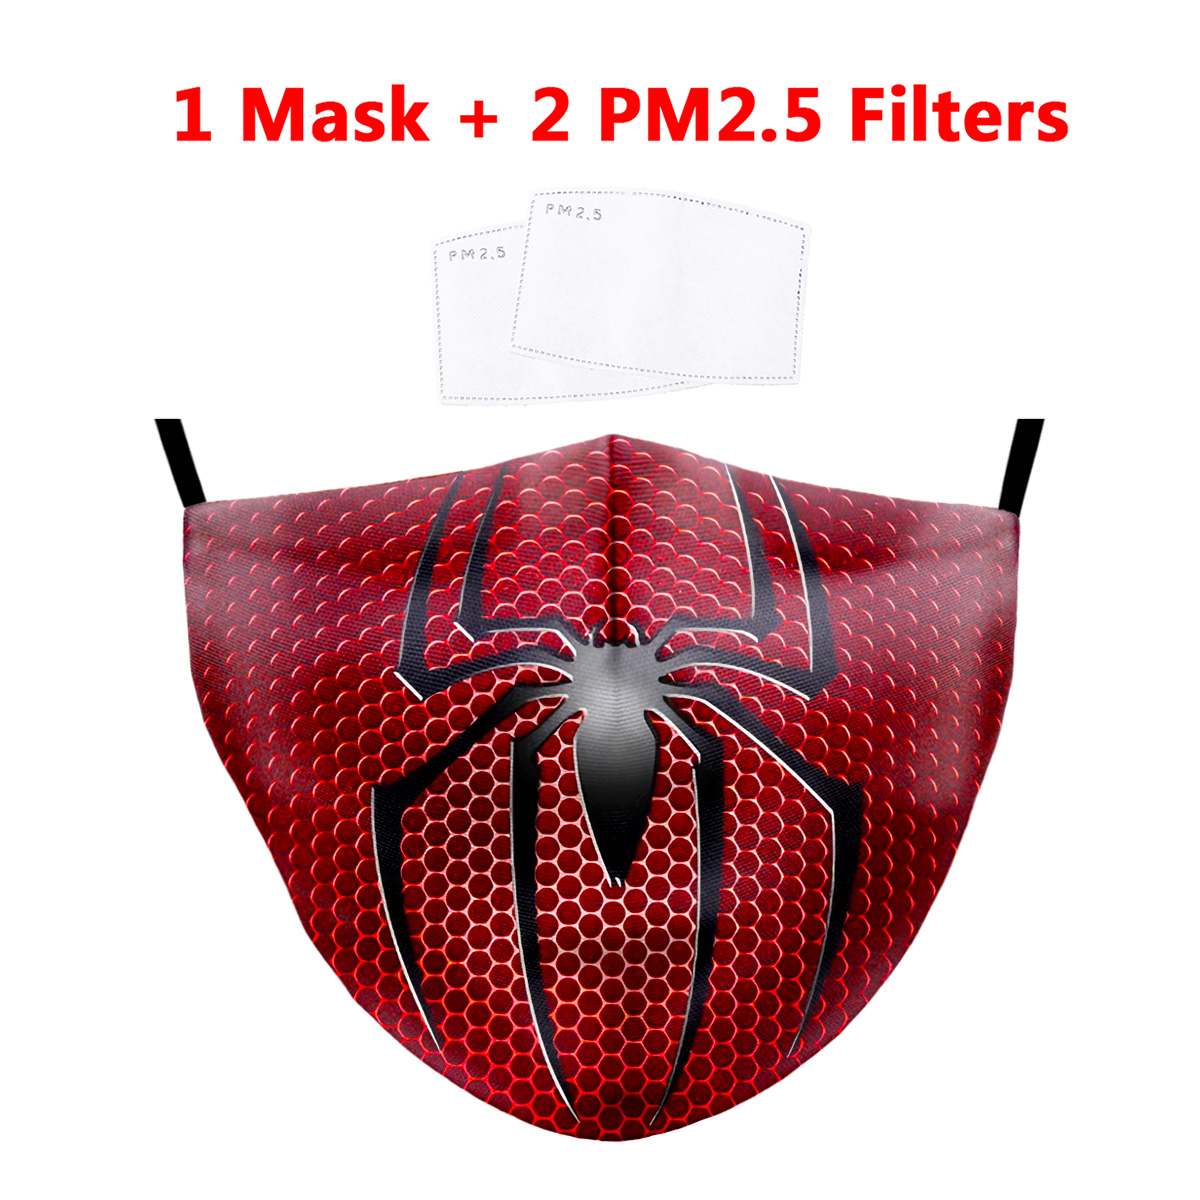 Fashion Marvel Spiderman LOGO 3D Print Mask Washable PM2.5 Filter Mouth Cover Face Reusable Mask Dust Bacteria Proof Flu Masks